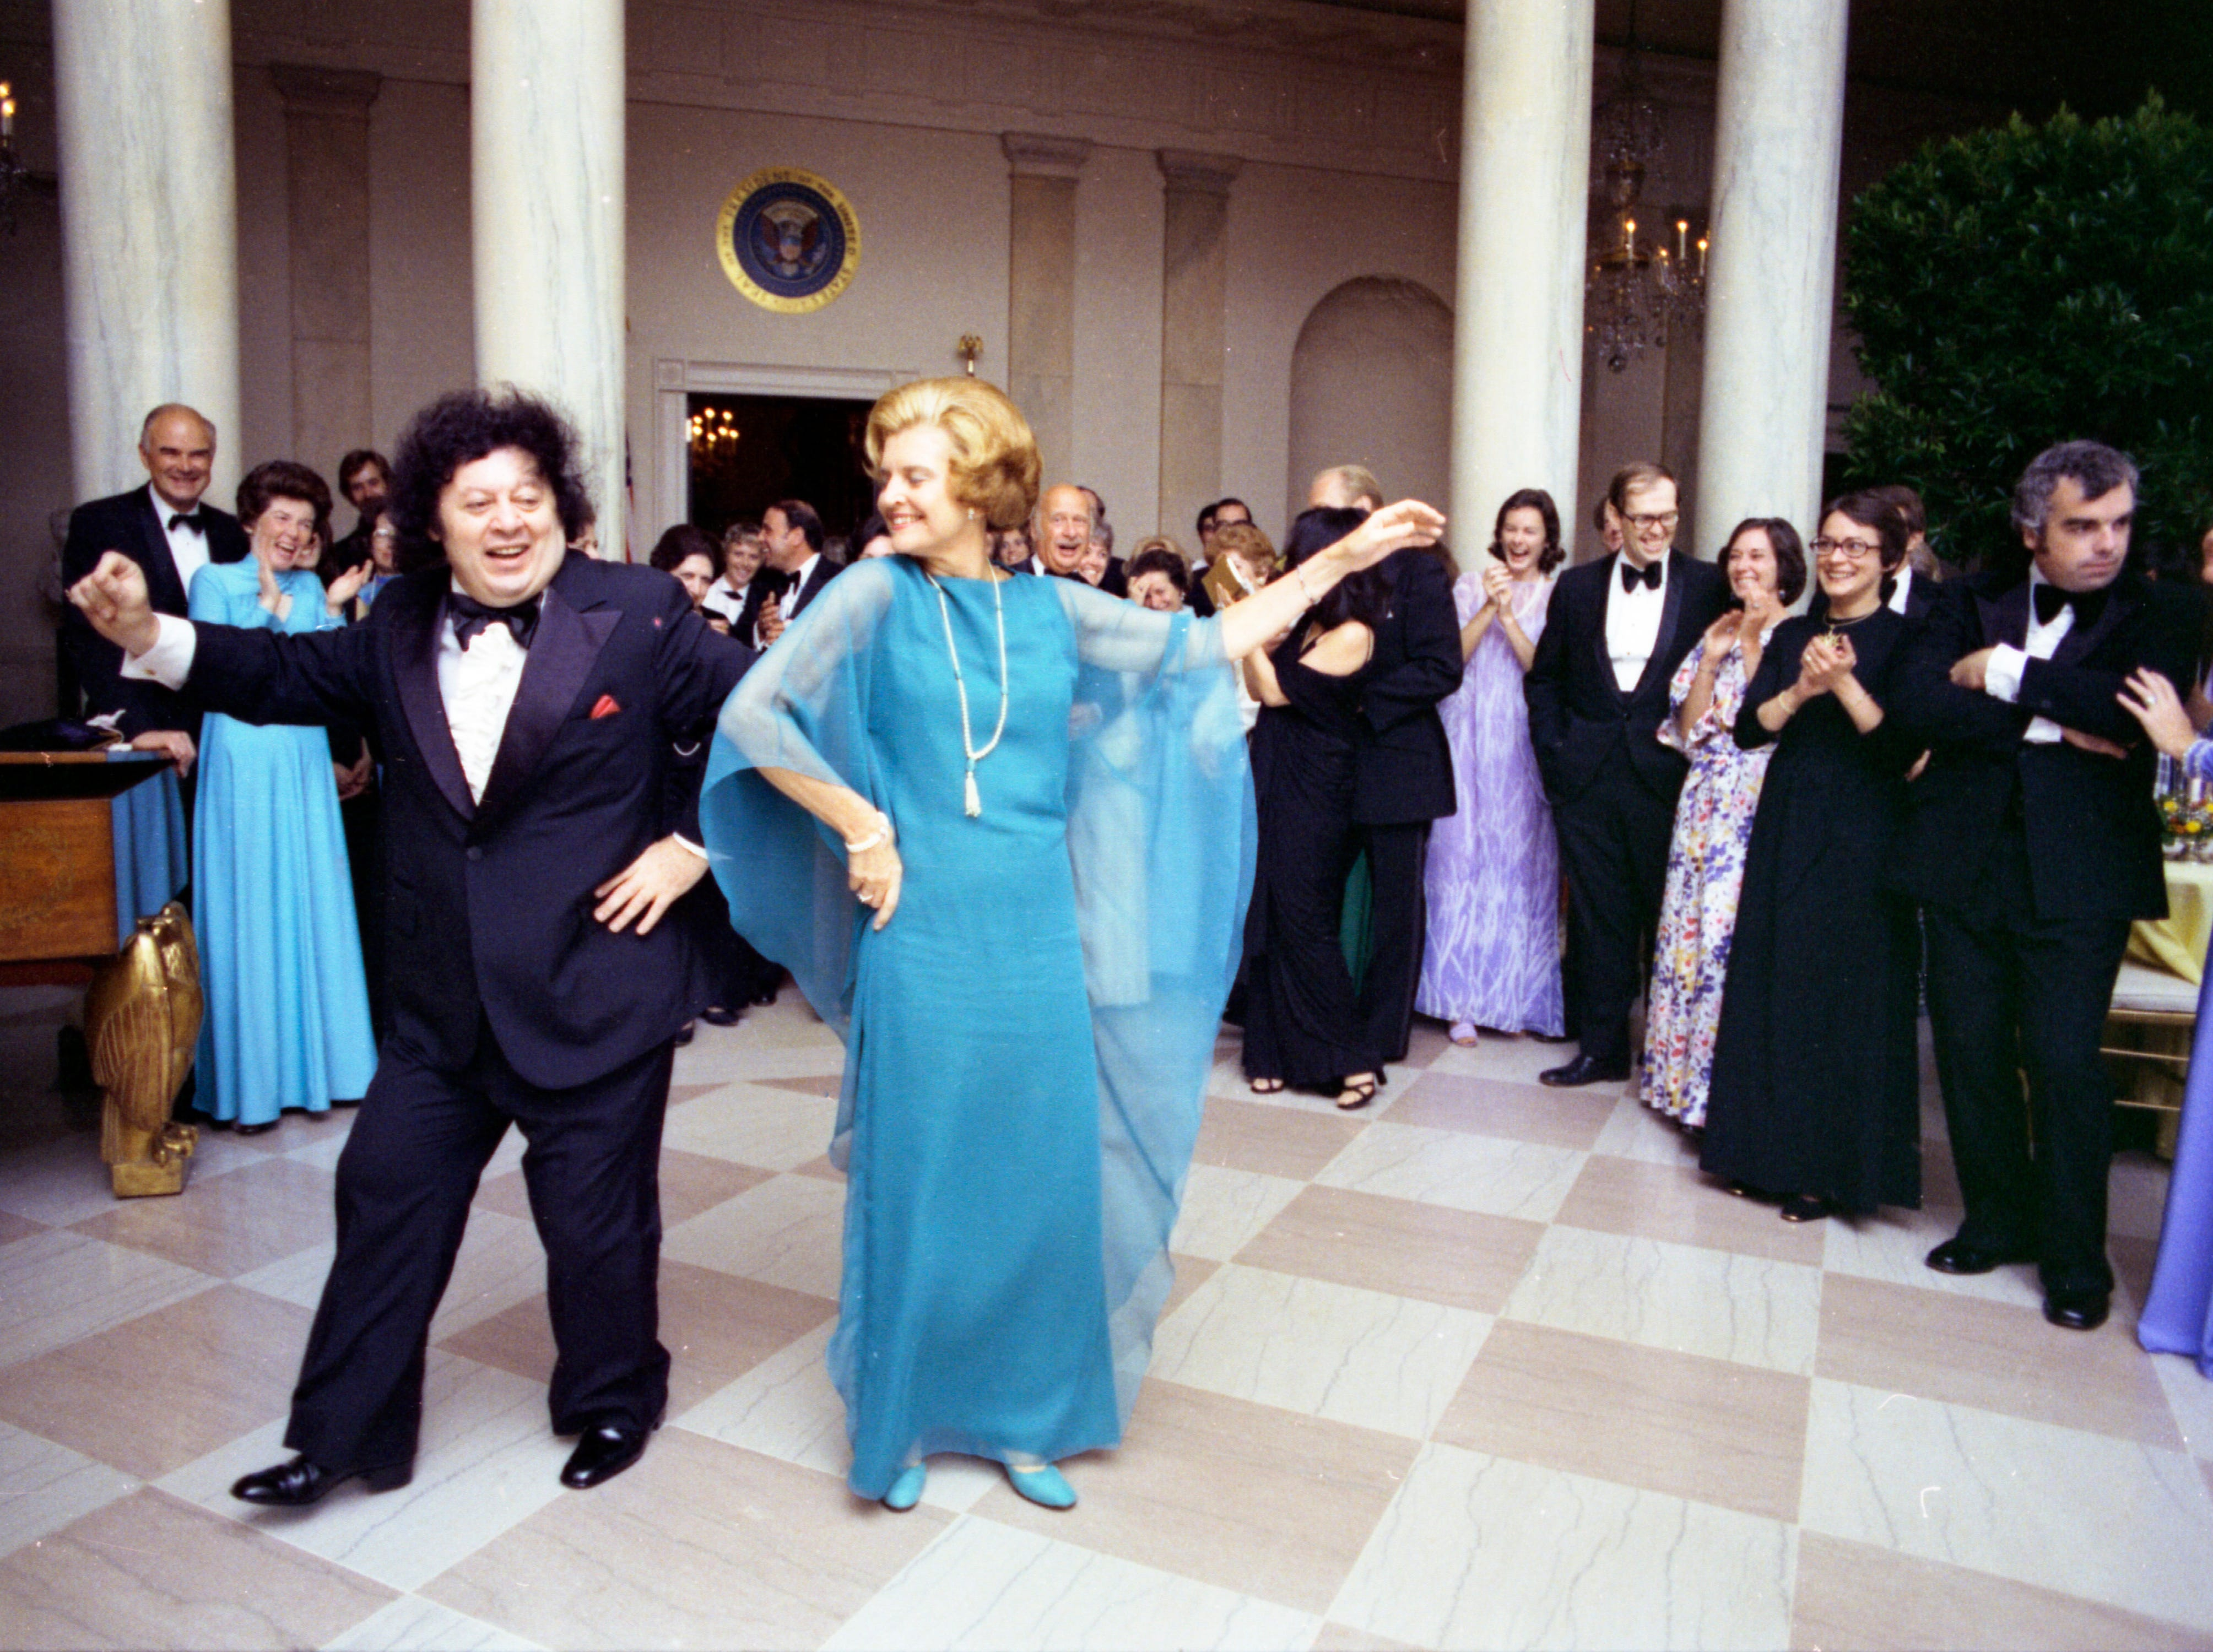 First Lady Betty Ford and Comedian Marty Allen dancing in the Grand Hall of the White House following a State Dinner honoring the President of Liberia. Sept. 21, 1976.